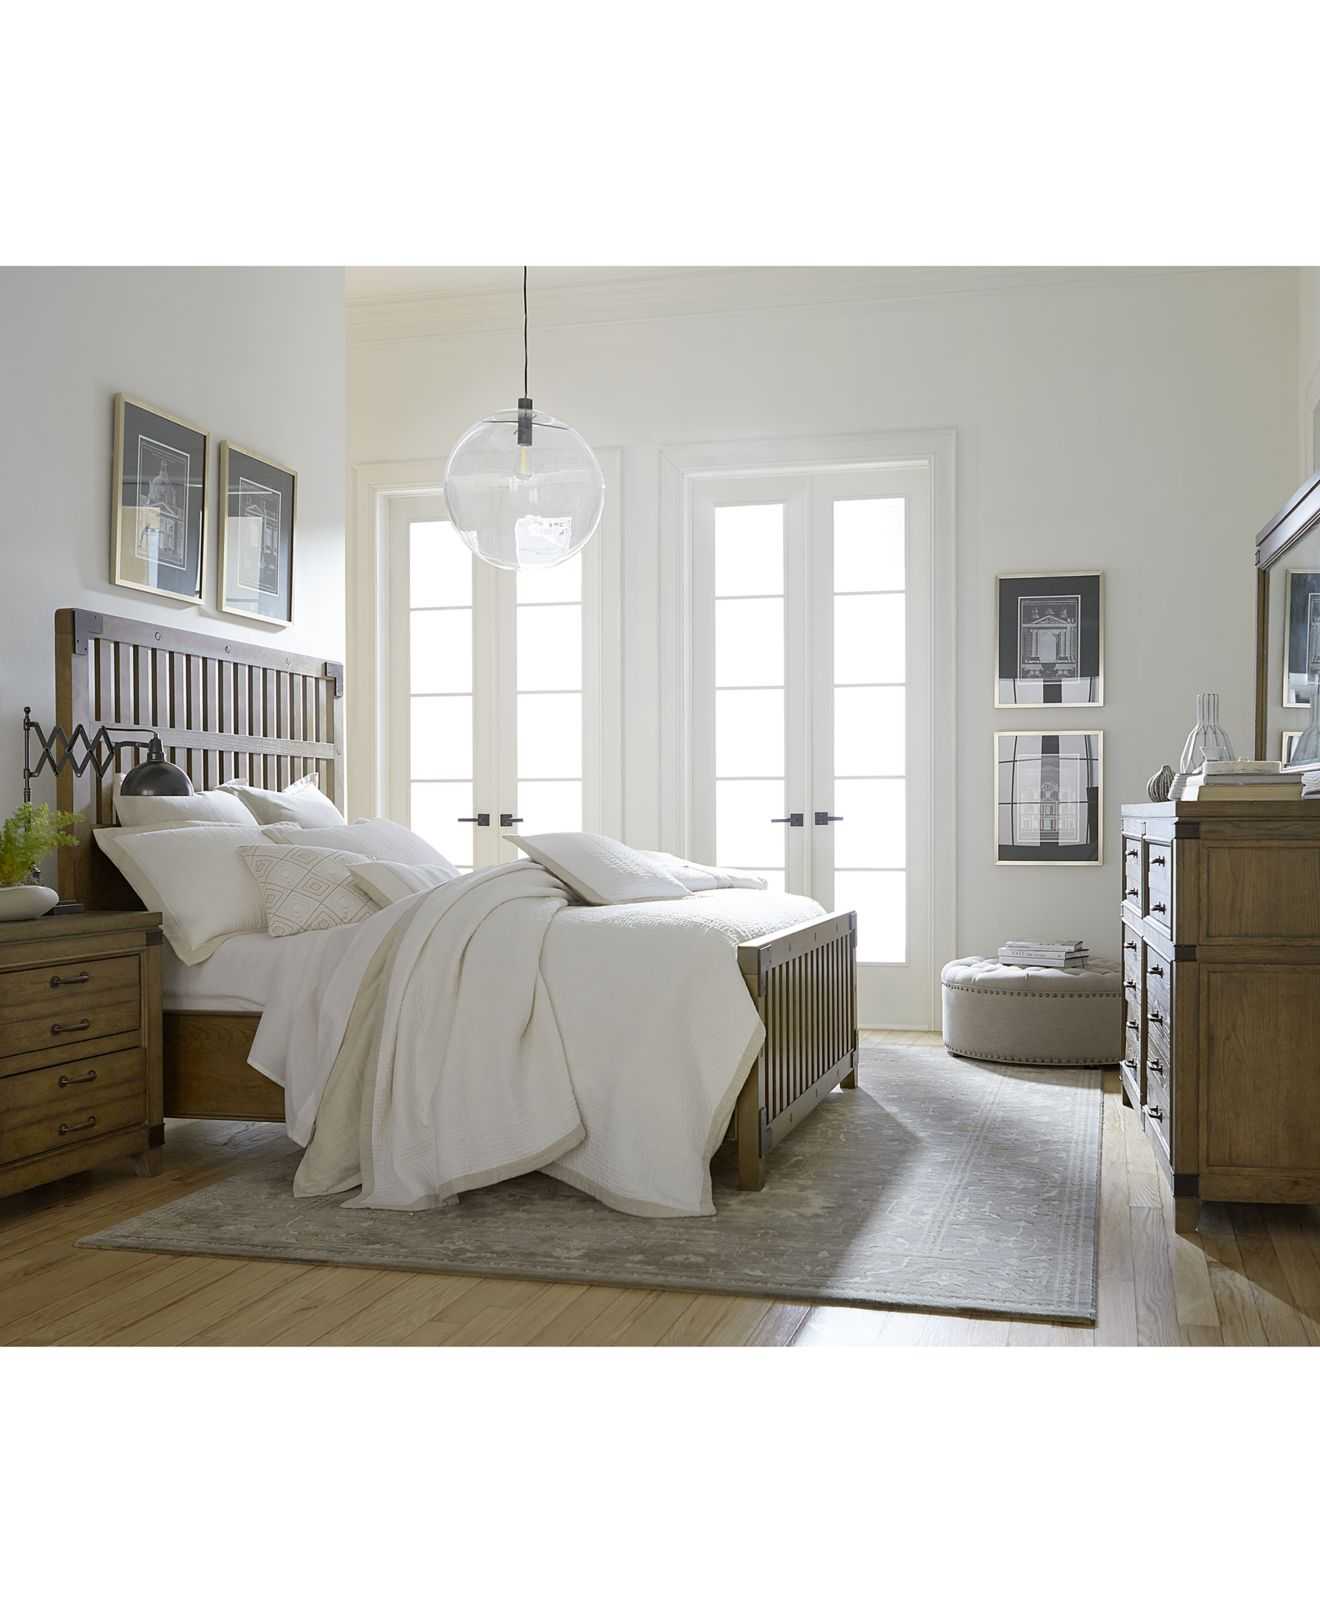 Rustic Bedroom Furniture Sets Macy s